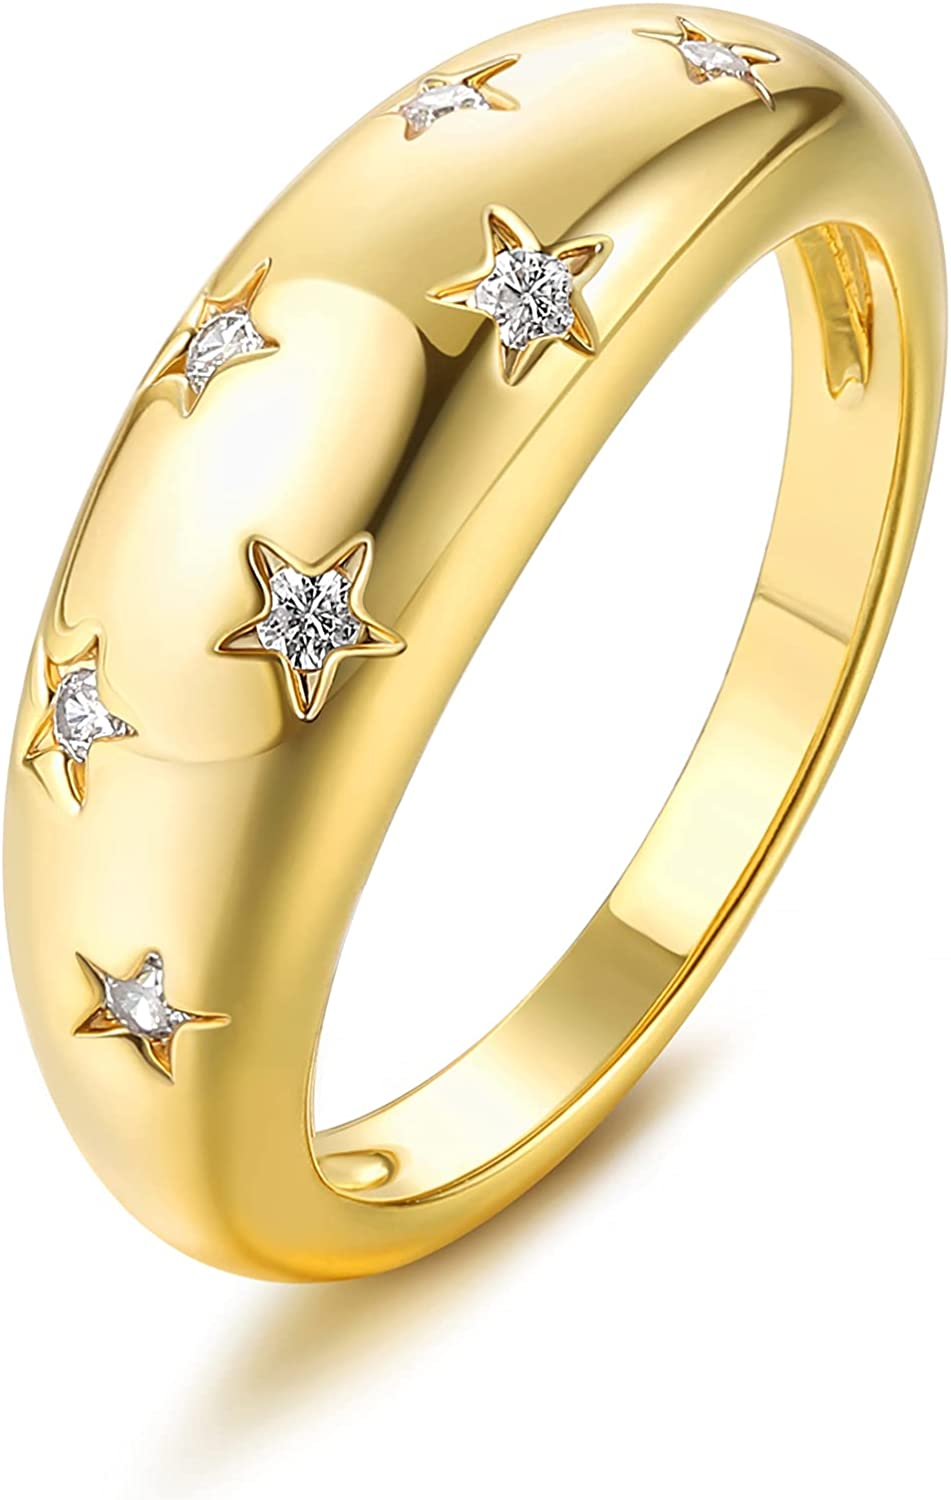 18k Gold Plated Dome Chunky Rings Croissant Rings with Cubic Zirconia Inlayed Star Shiny Chunky Rings Set Dome Thick Rings for Women Girls Jewelry Minimalist Statement Ring Size 5 to 10